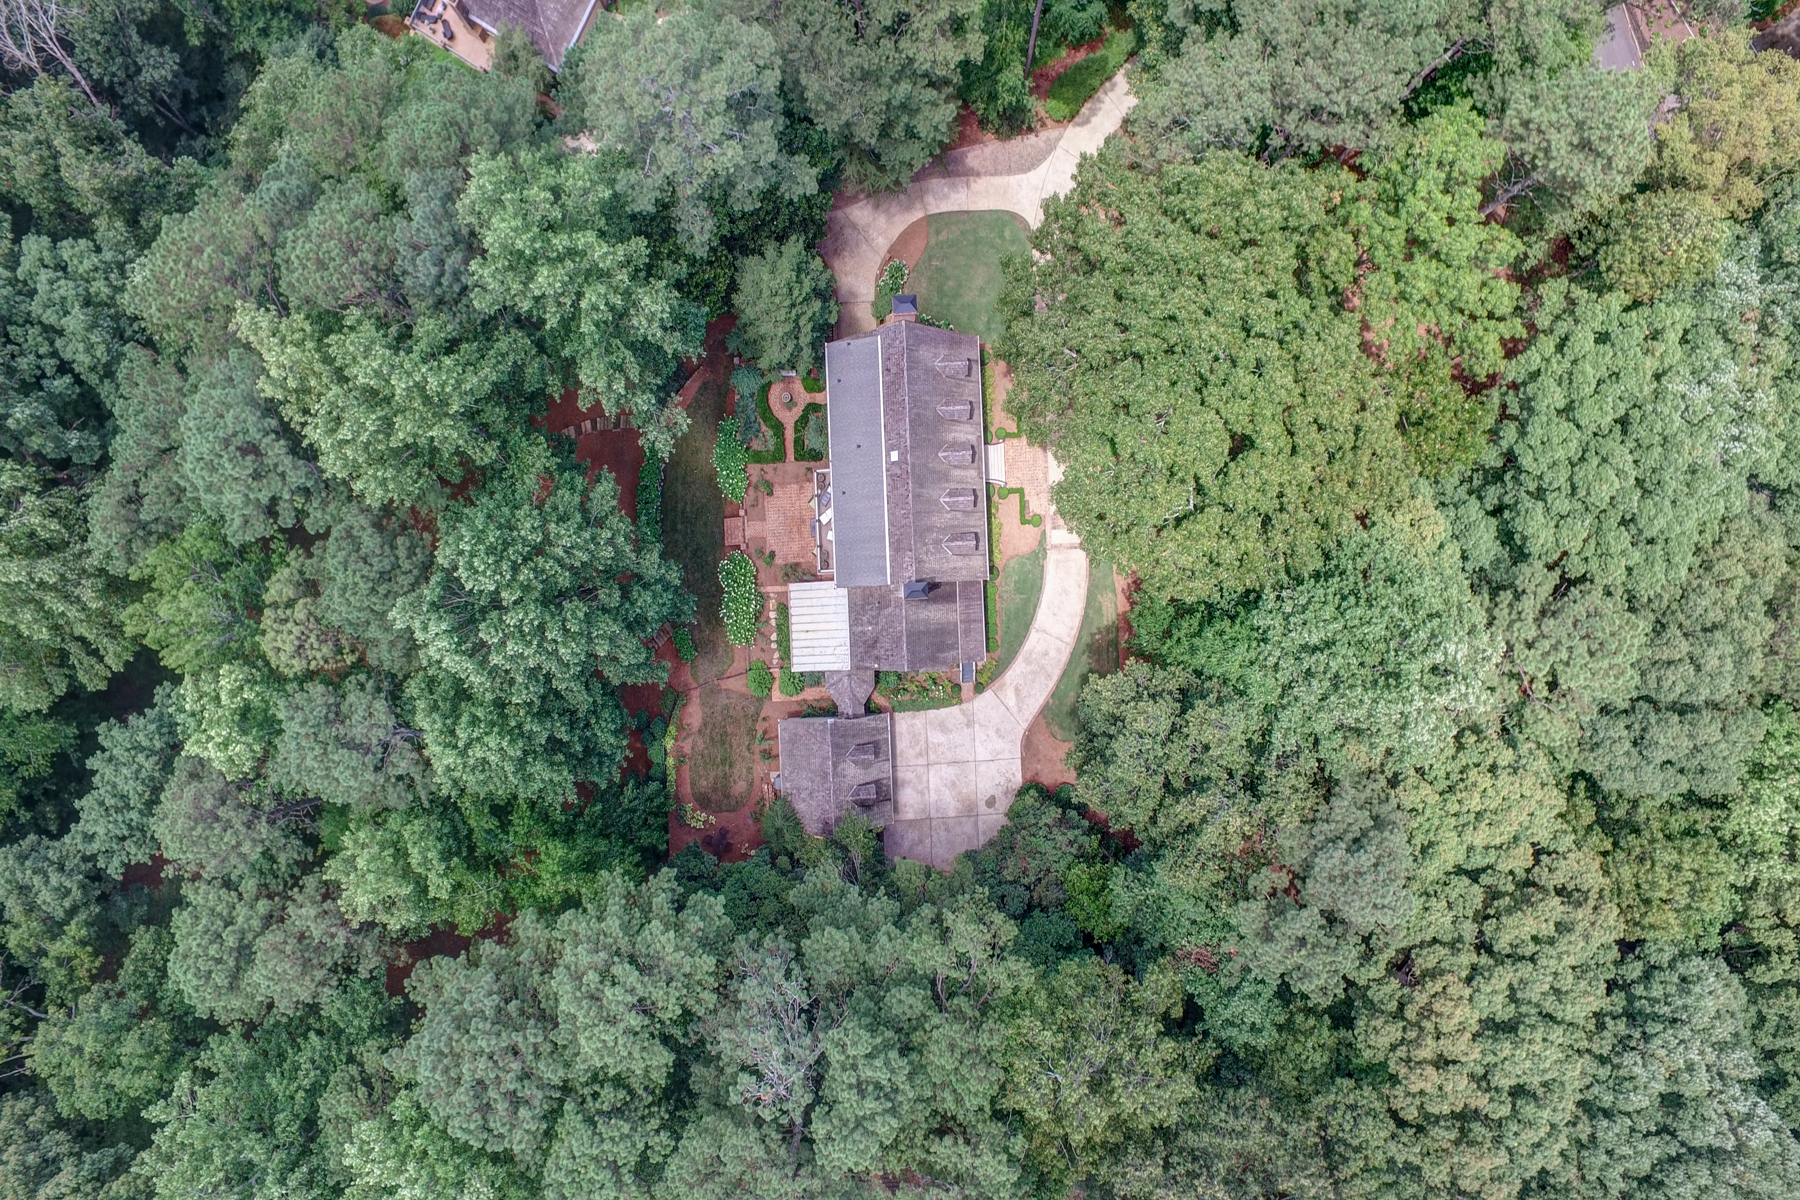 Single Family Home for Sale at Beautiful Private Property In Great Neighborhood 1725 Winterthur Close NW Sandy Springs, Georgia, 30328 United States